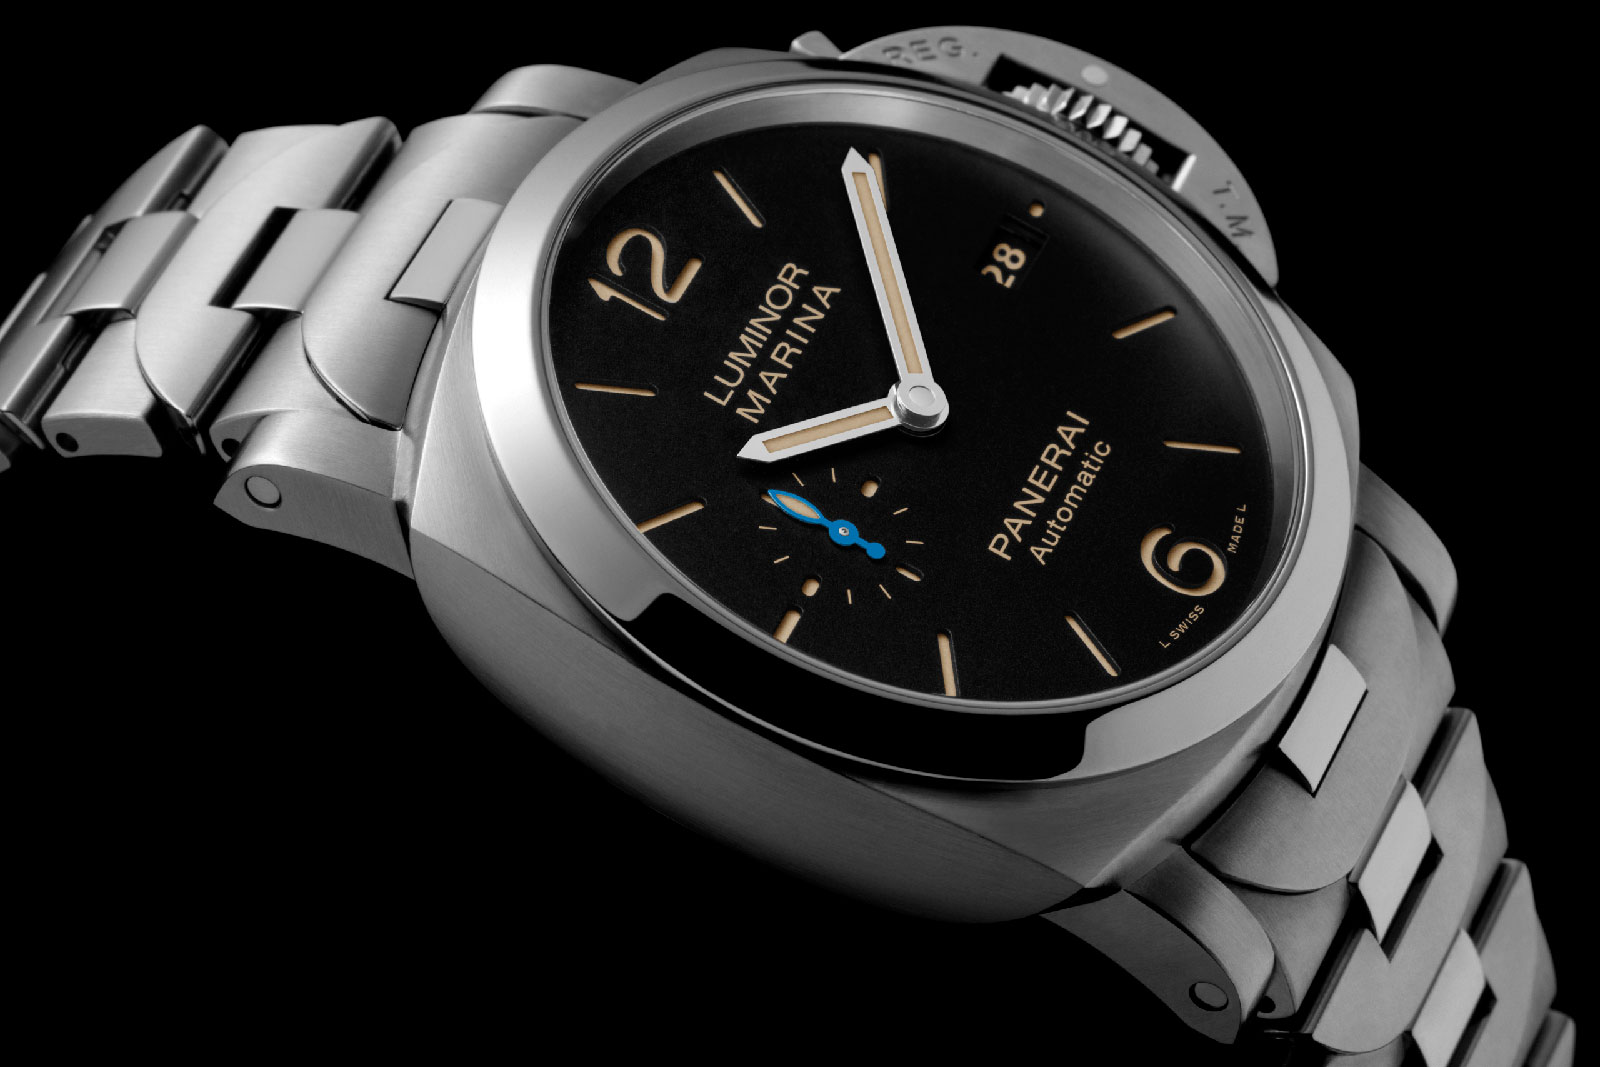 Panerai-Luminor-1950-3-Days-Automatic-bracelet-PAM722-1.jpg